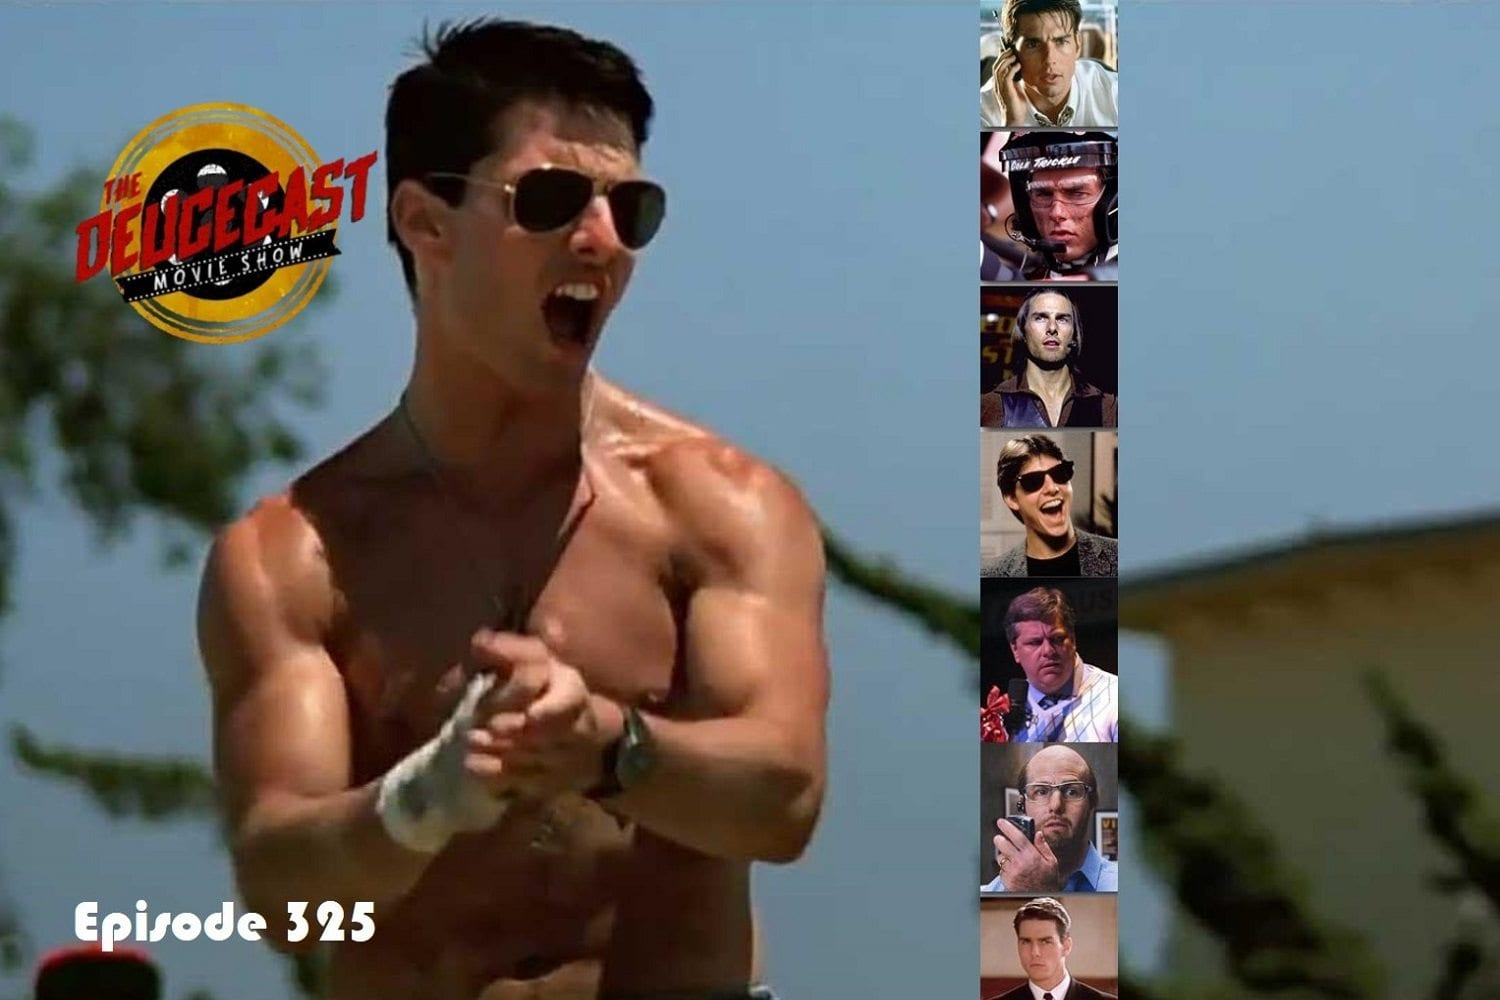 The Deucecast Movie Show #325: Tom Cruise Sweet 16 (aka, Shirtless Volleyball with Ryfuns)